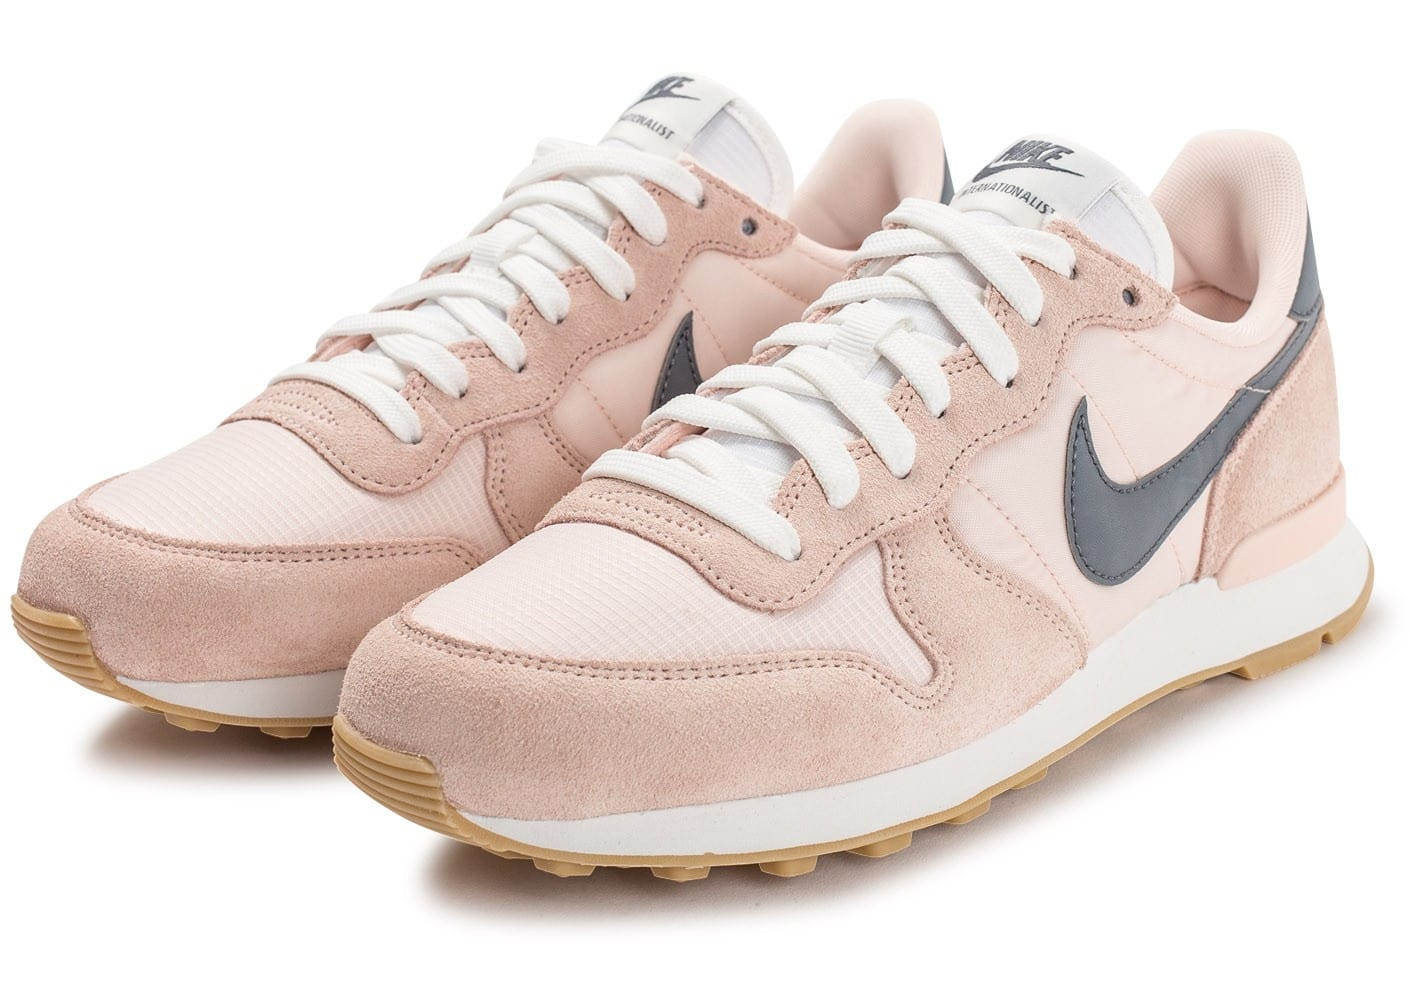 nike internationalist femme rose et gris